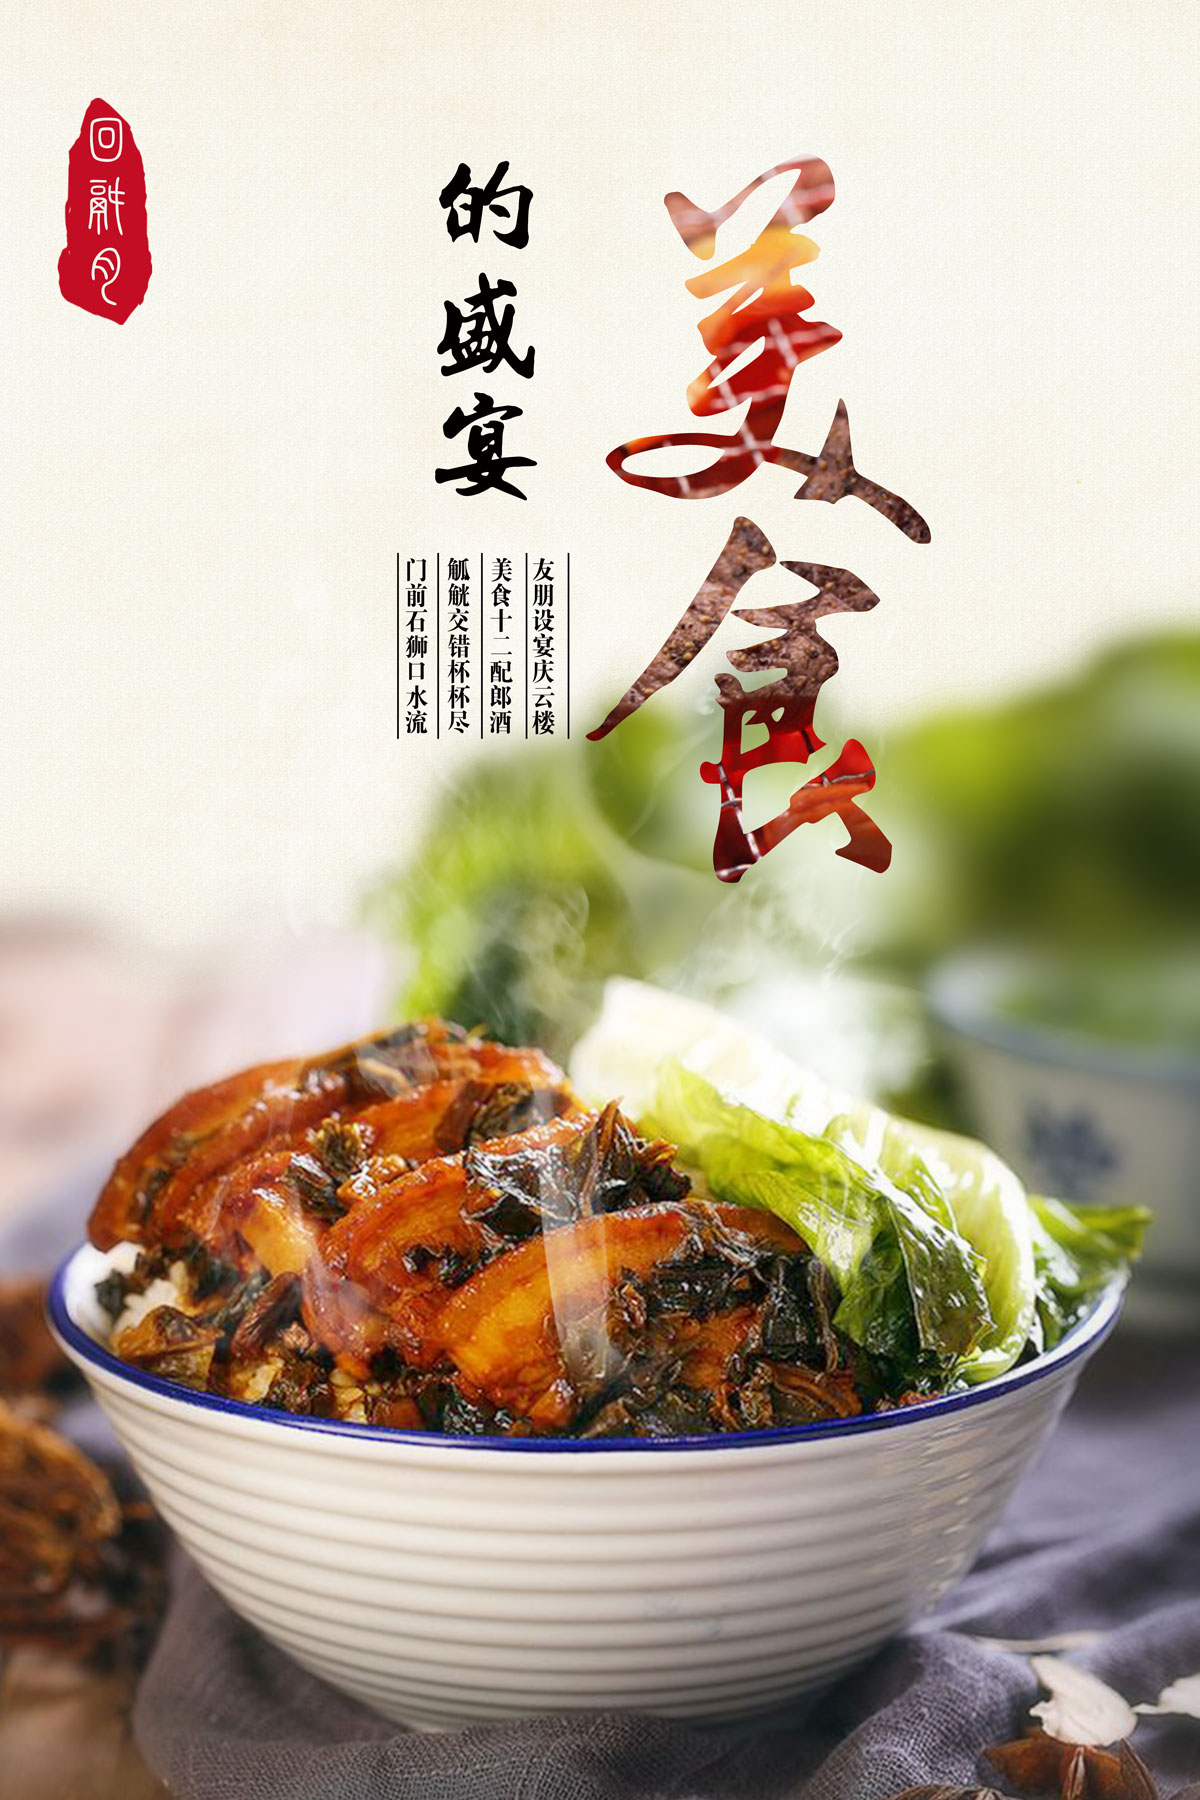 Classical Chinese food poster design scheme PSD File Free Download